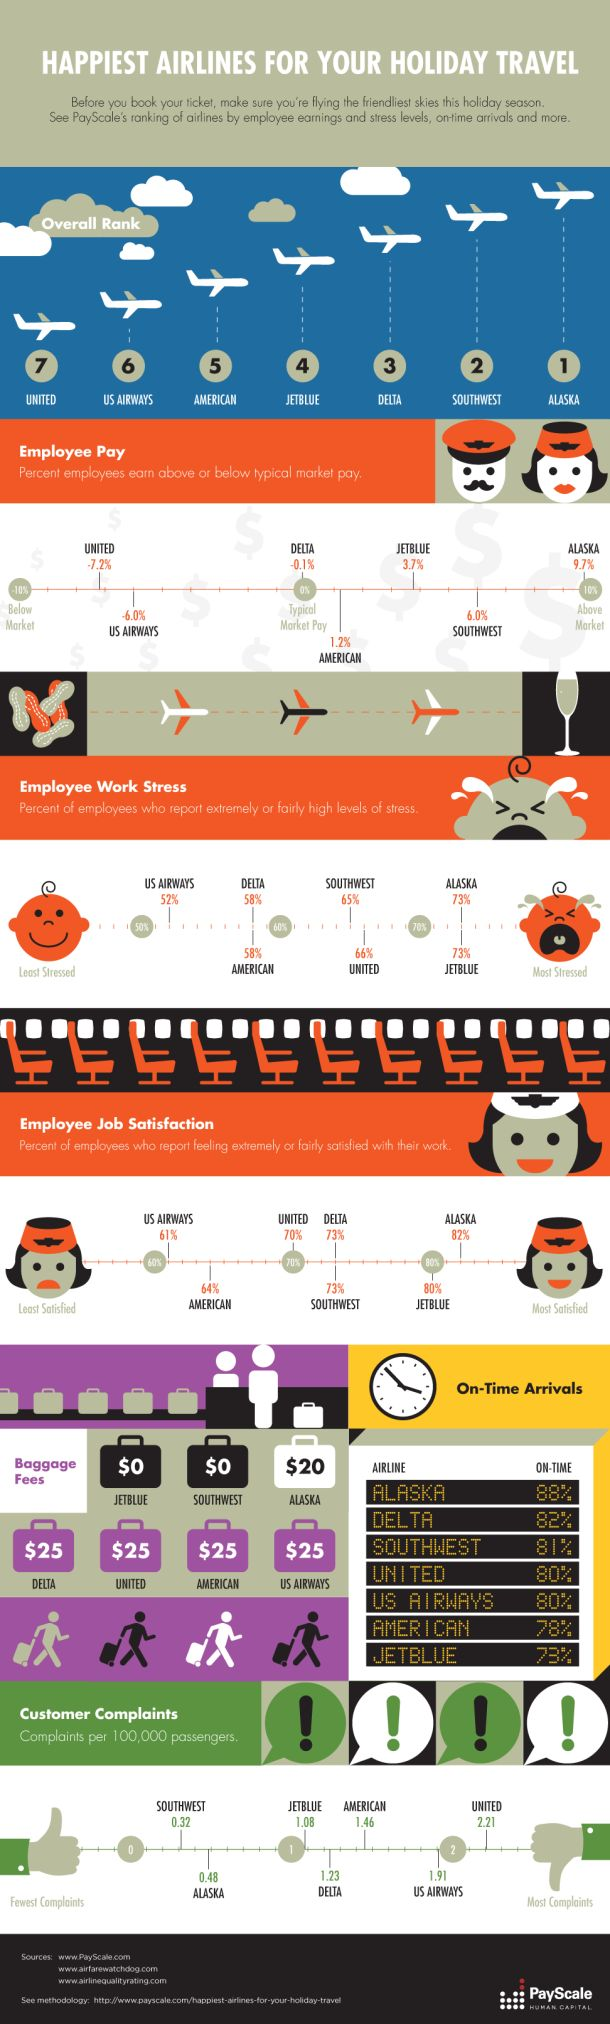 Happiest Airlines for Your Holiday Travel [INFOGRAPHIC] #airlines #travel